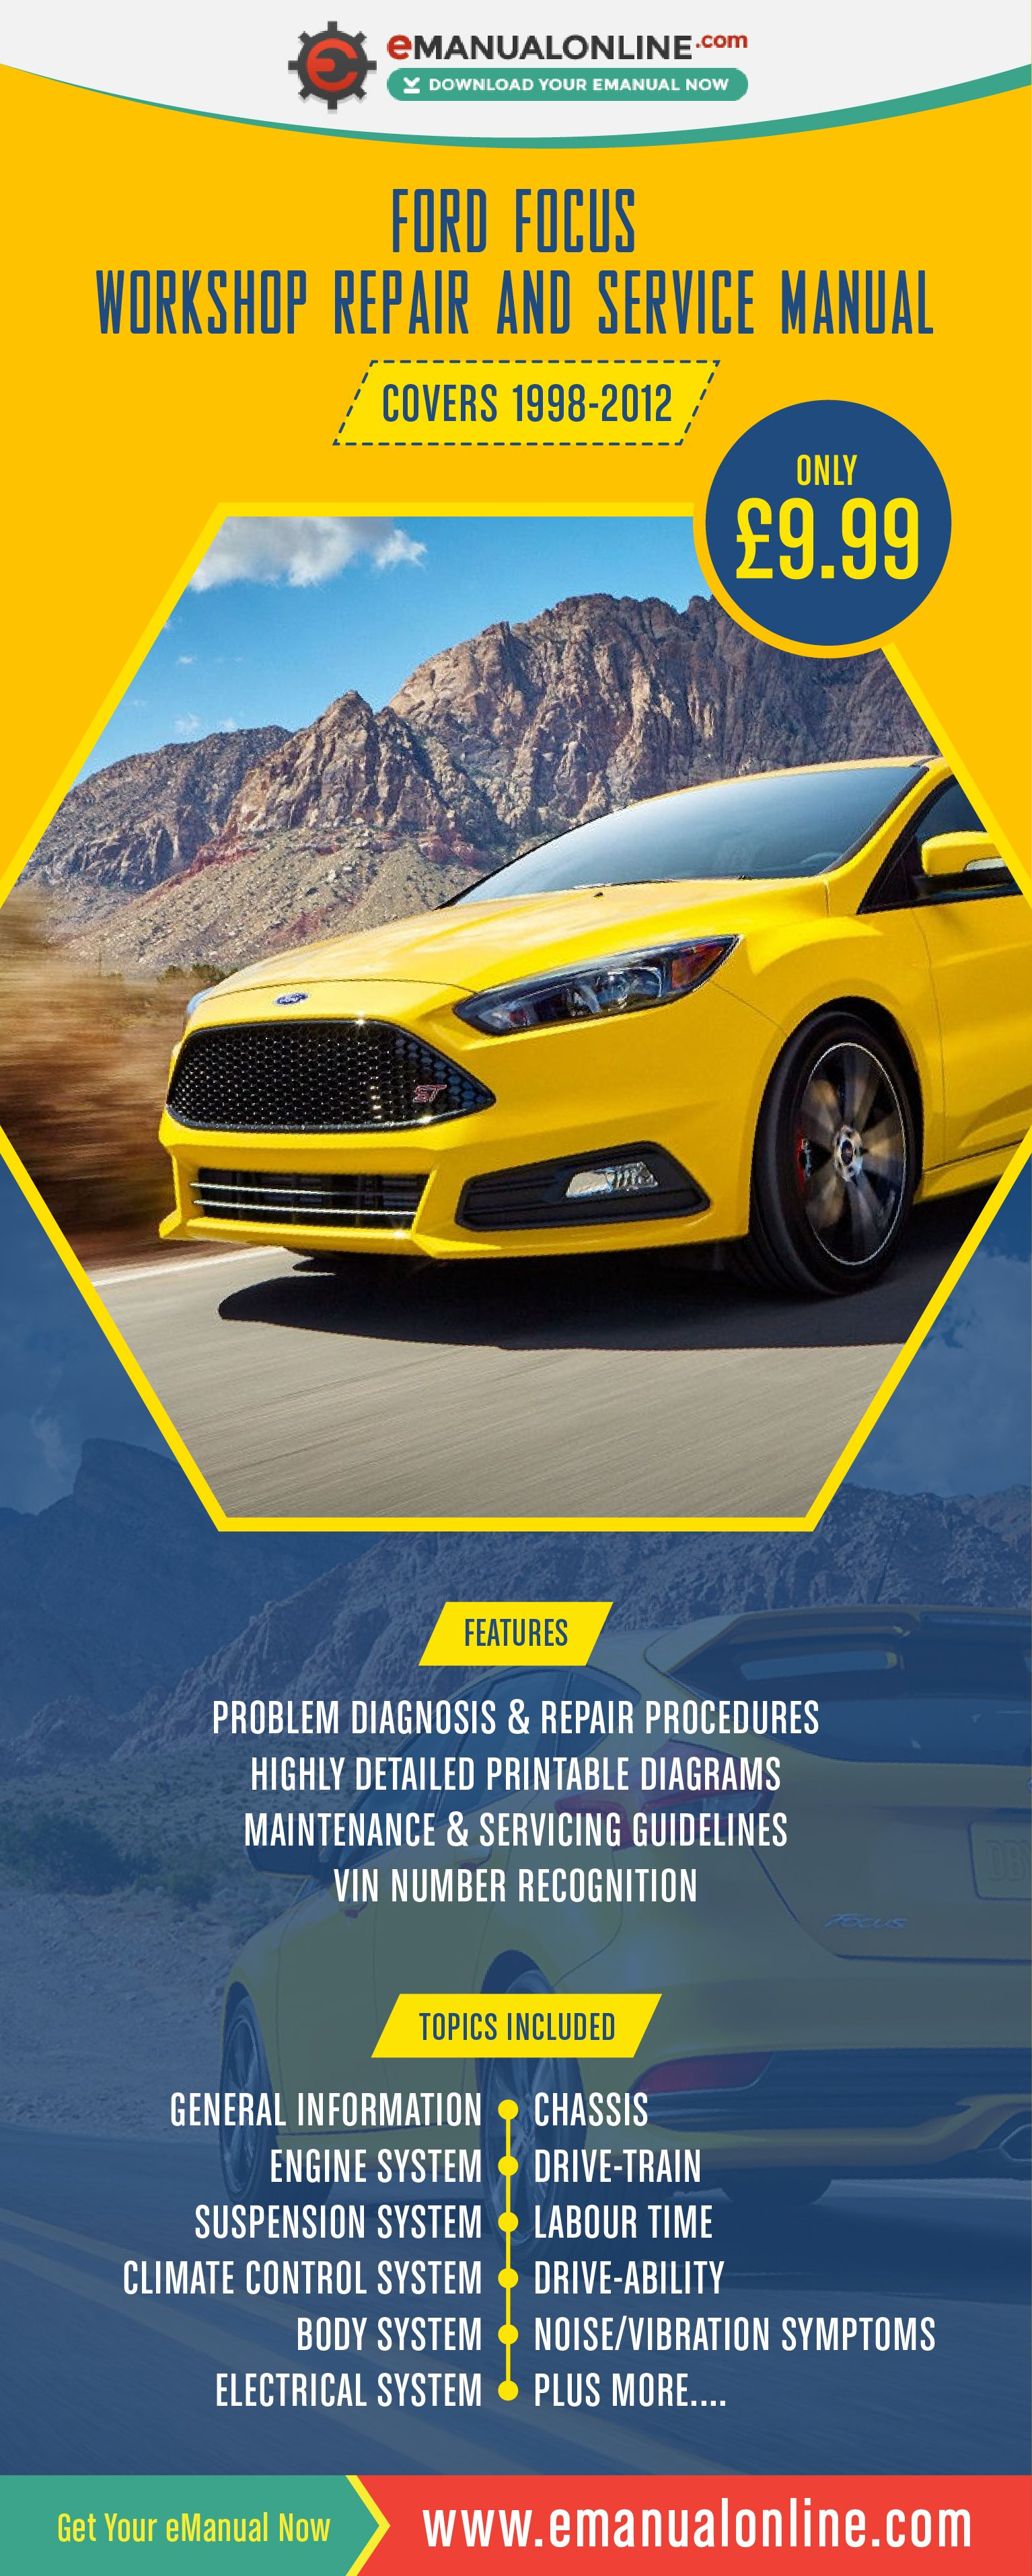 Ford Focus Workshop Repair and Service Manual This workshop manual contains  comprehensive data on repair procedures,diagnostic procedures, servicing  and ...